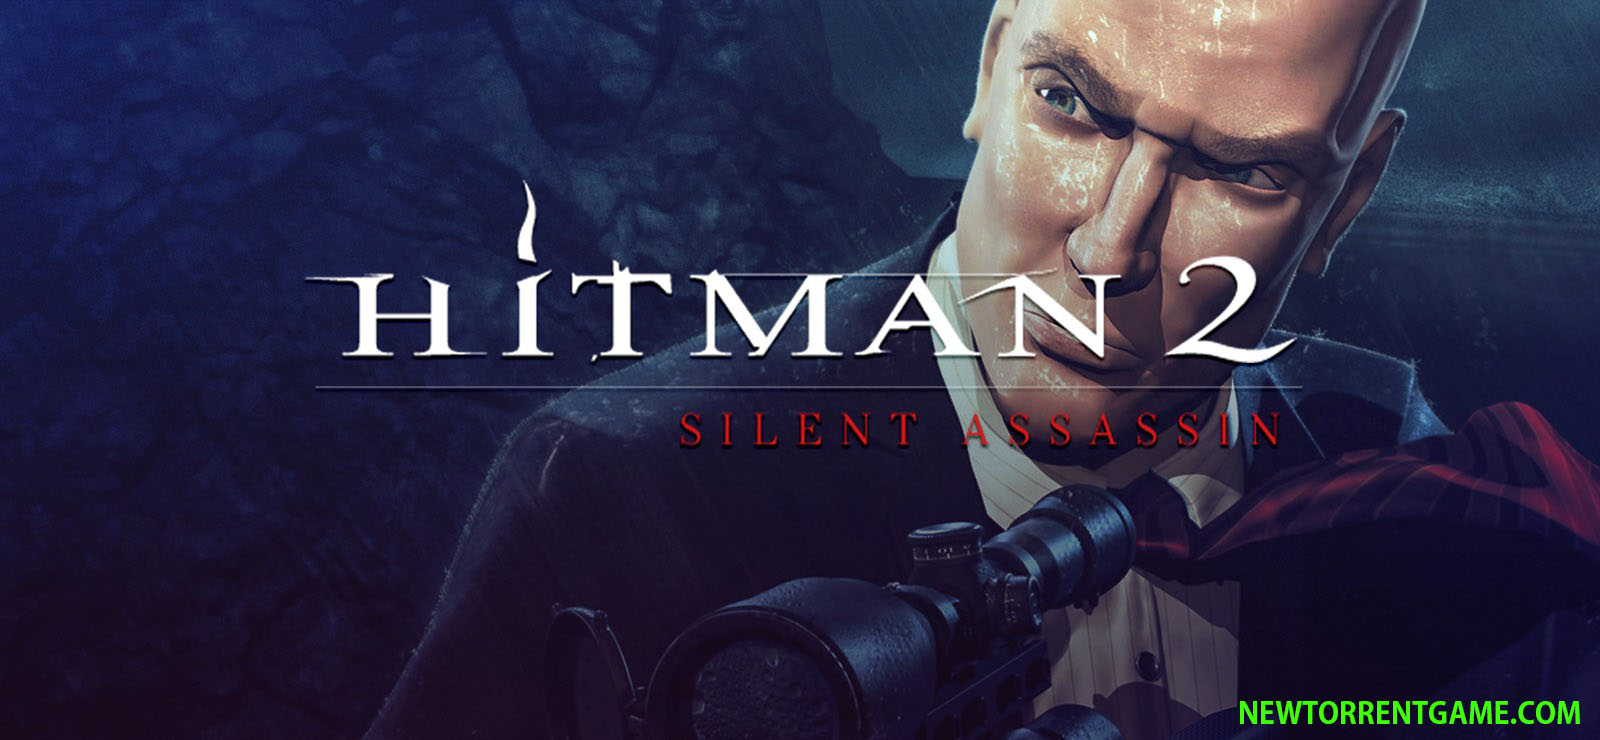 Hitman 2 Download PC Game Cracked Torrent - STEAMPUNKS …